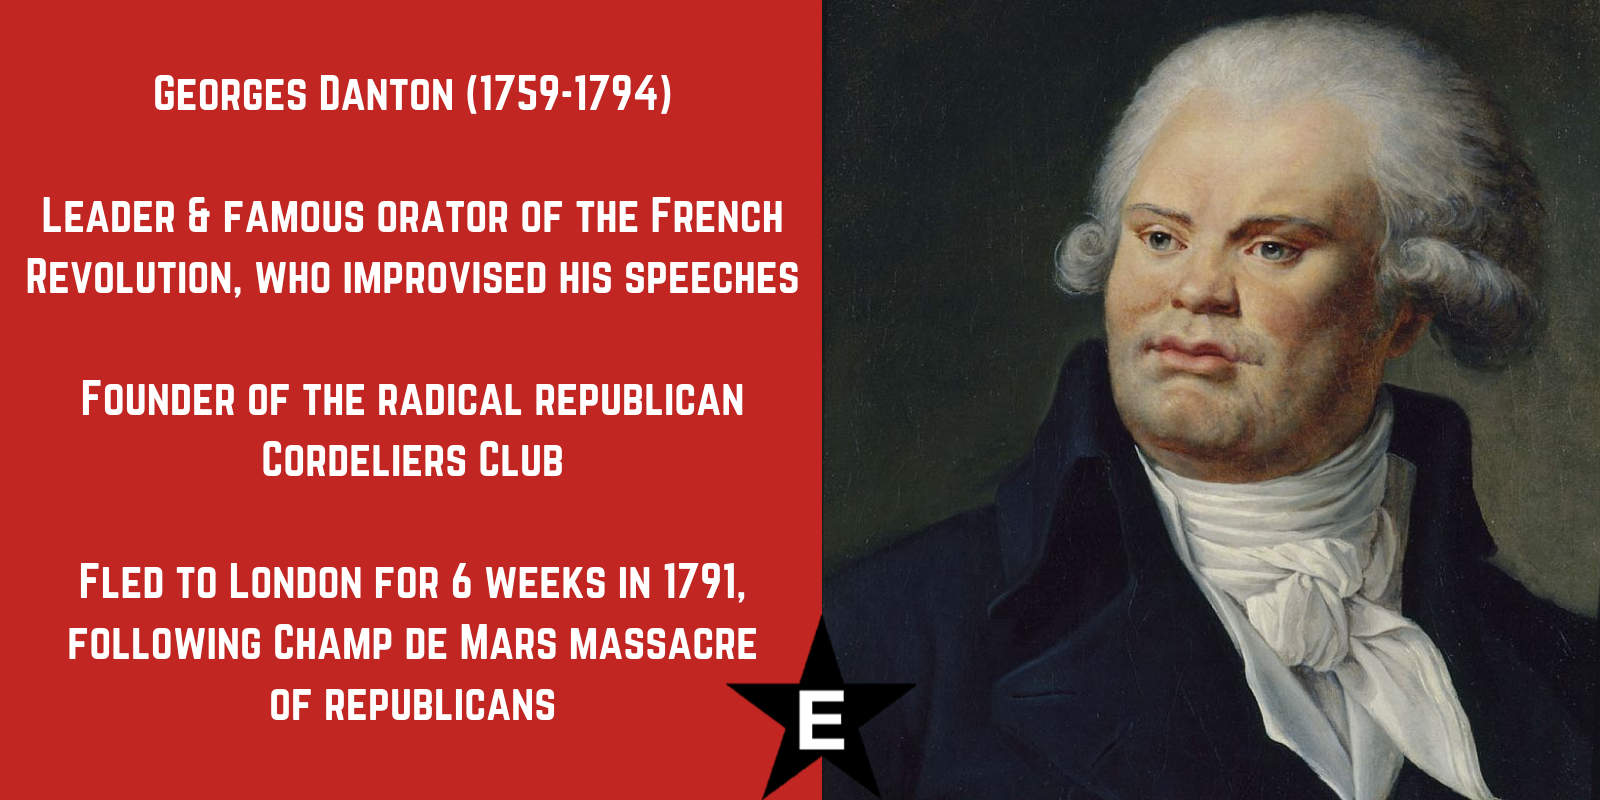 Georges Danton georges danton was a leading figure of the french revolution